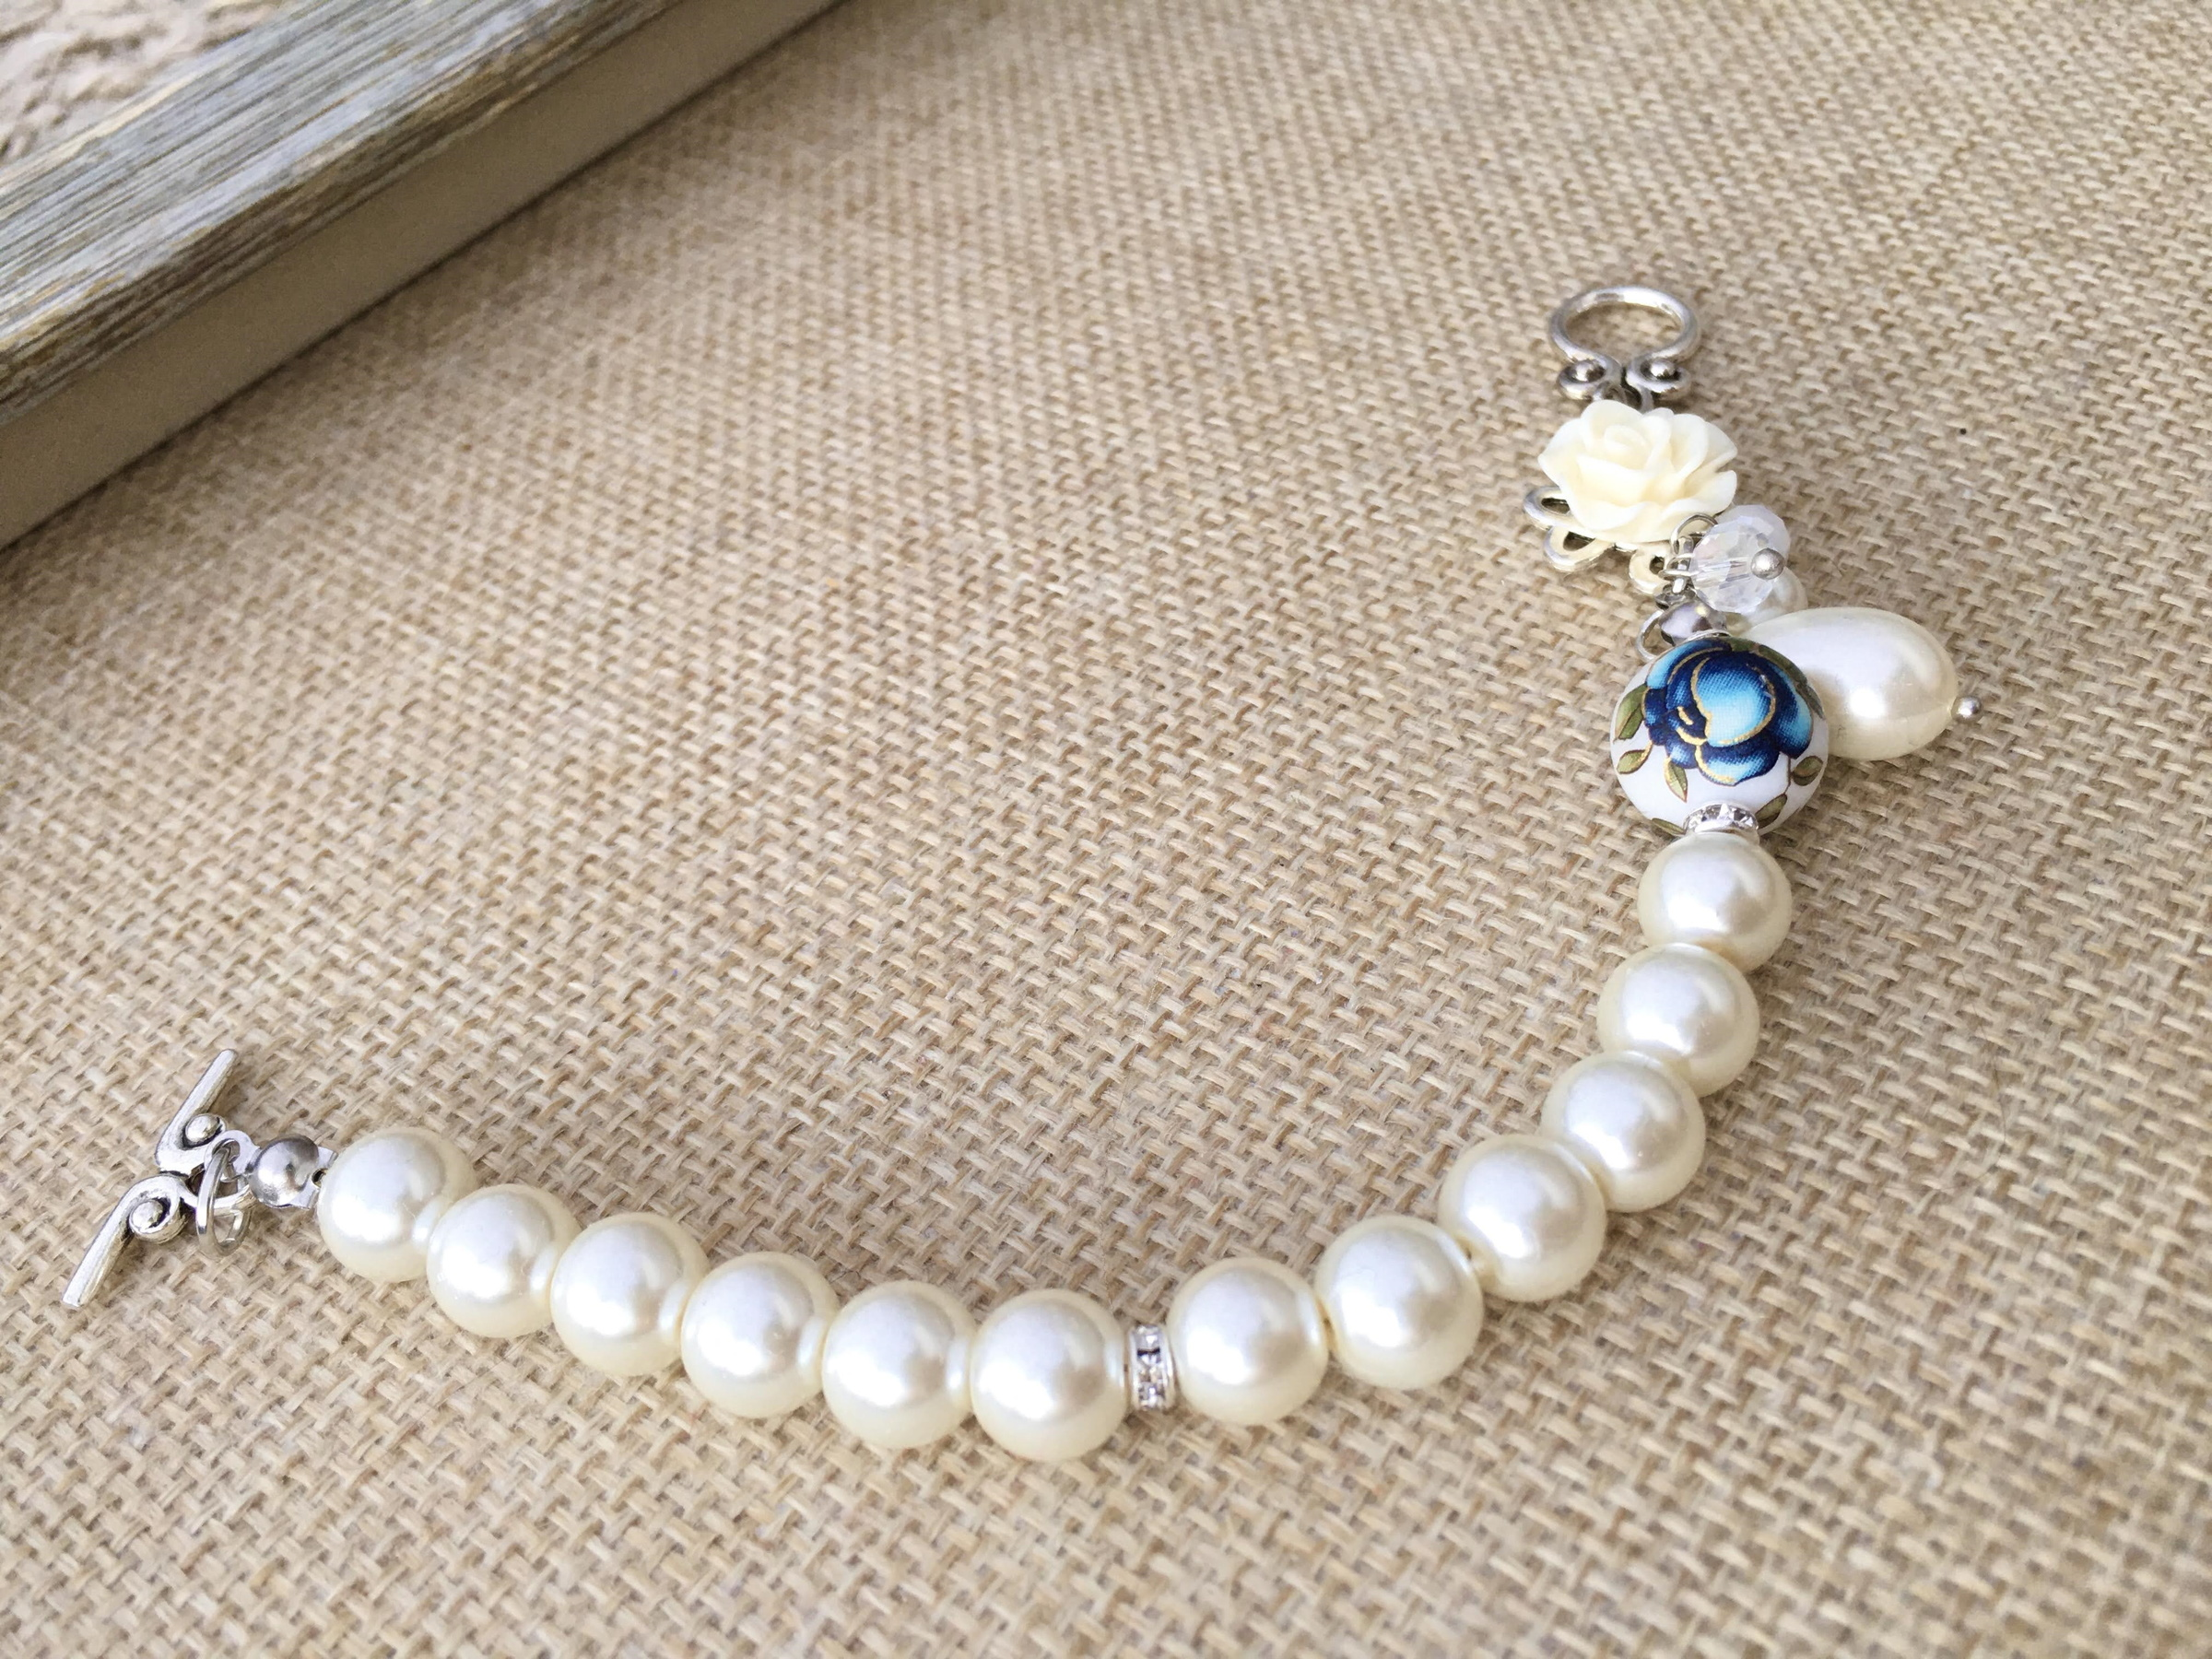 Classic White Elegant Pearl Bracelet with Tensha Floral Bead.JPG